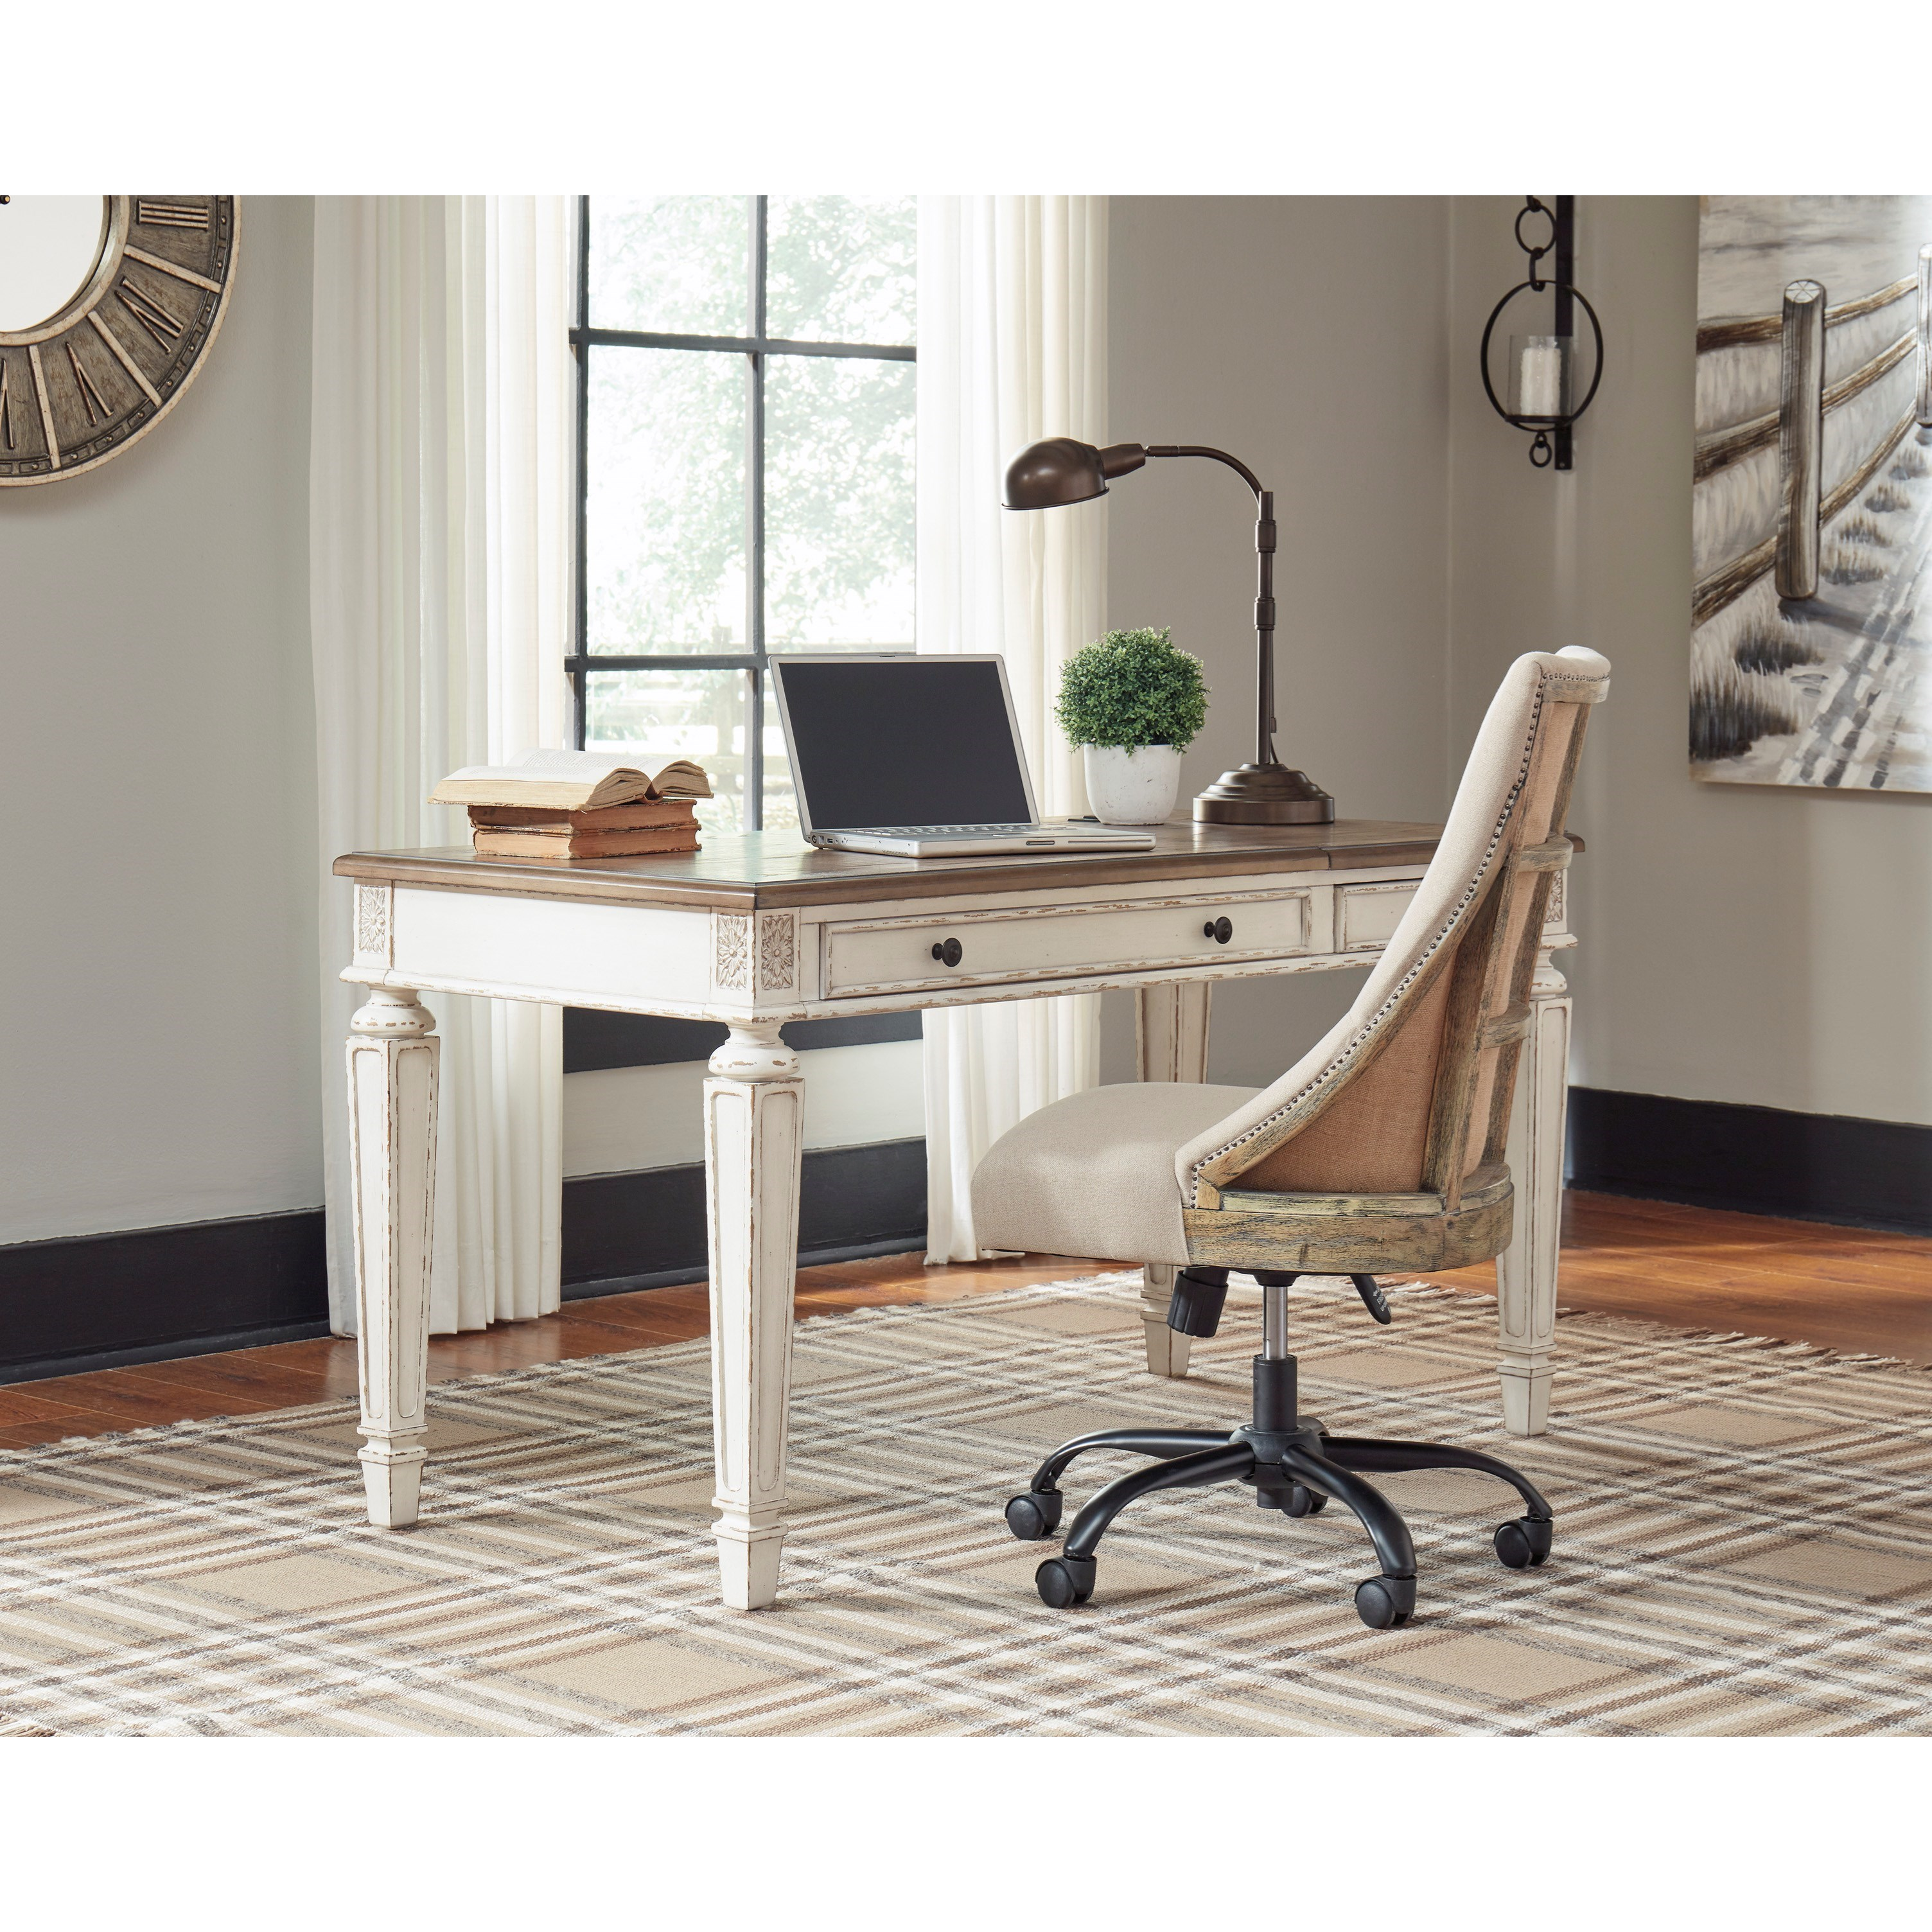 Signature Design By Ashley Realyn H743-134 Lift Top Desk